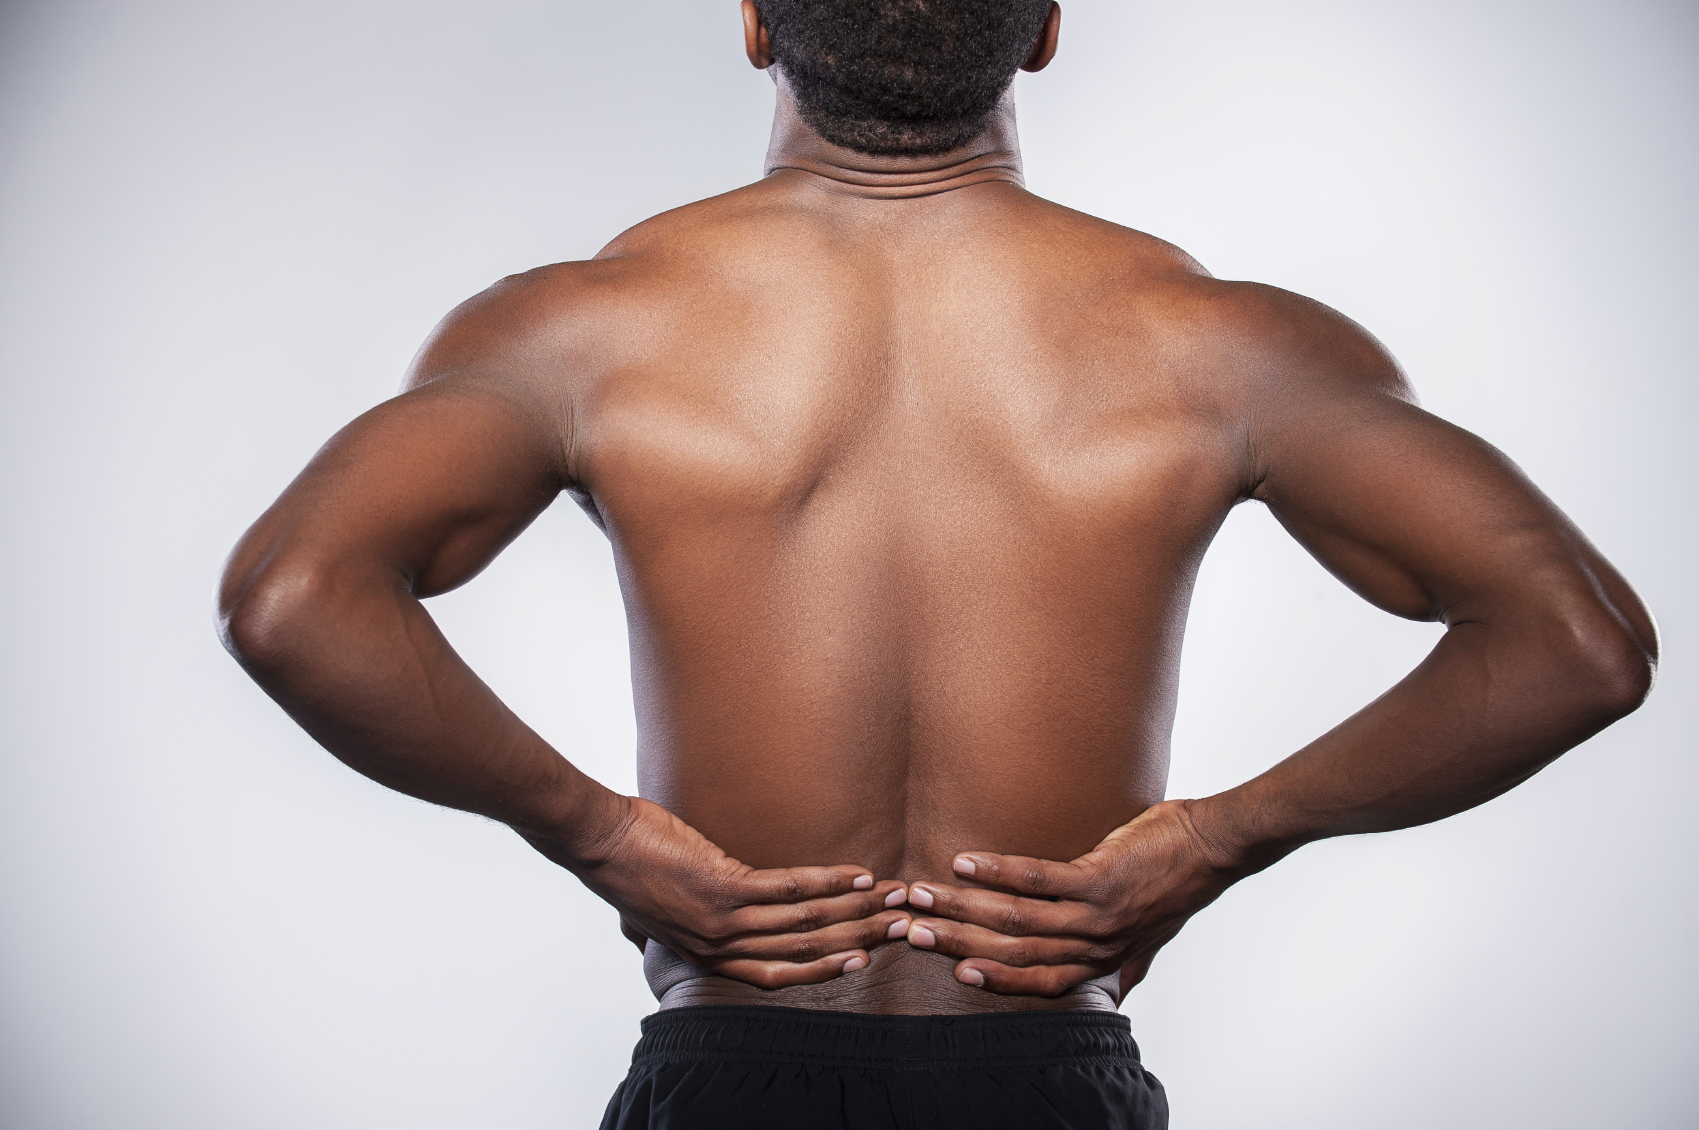 Slipped Disc Pinched Nerve And Back Pain